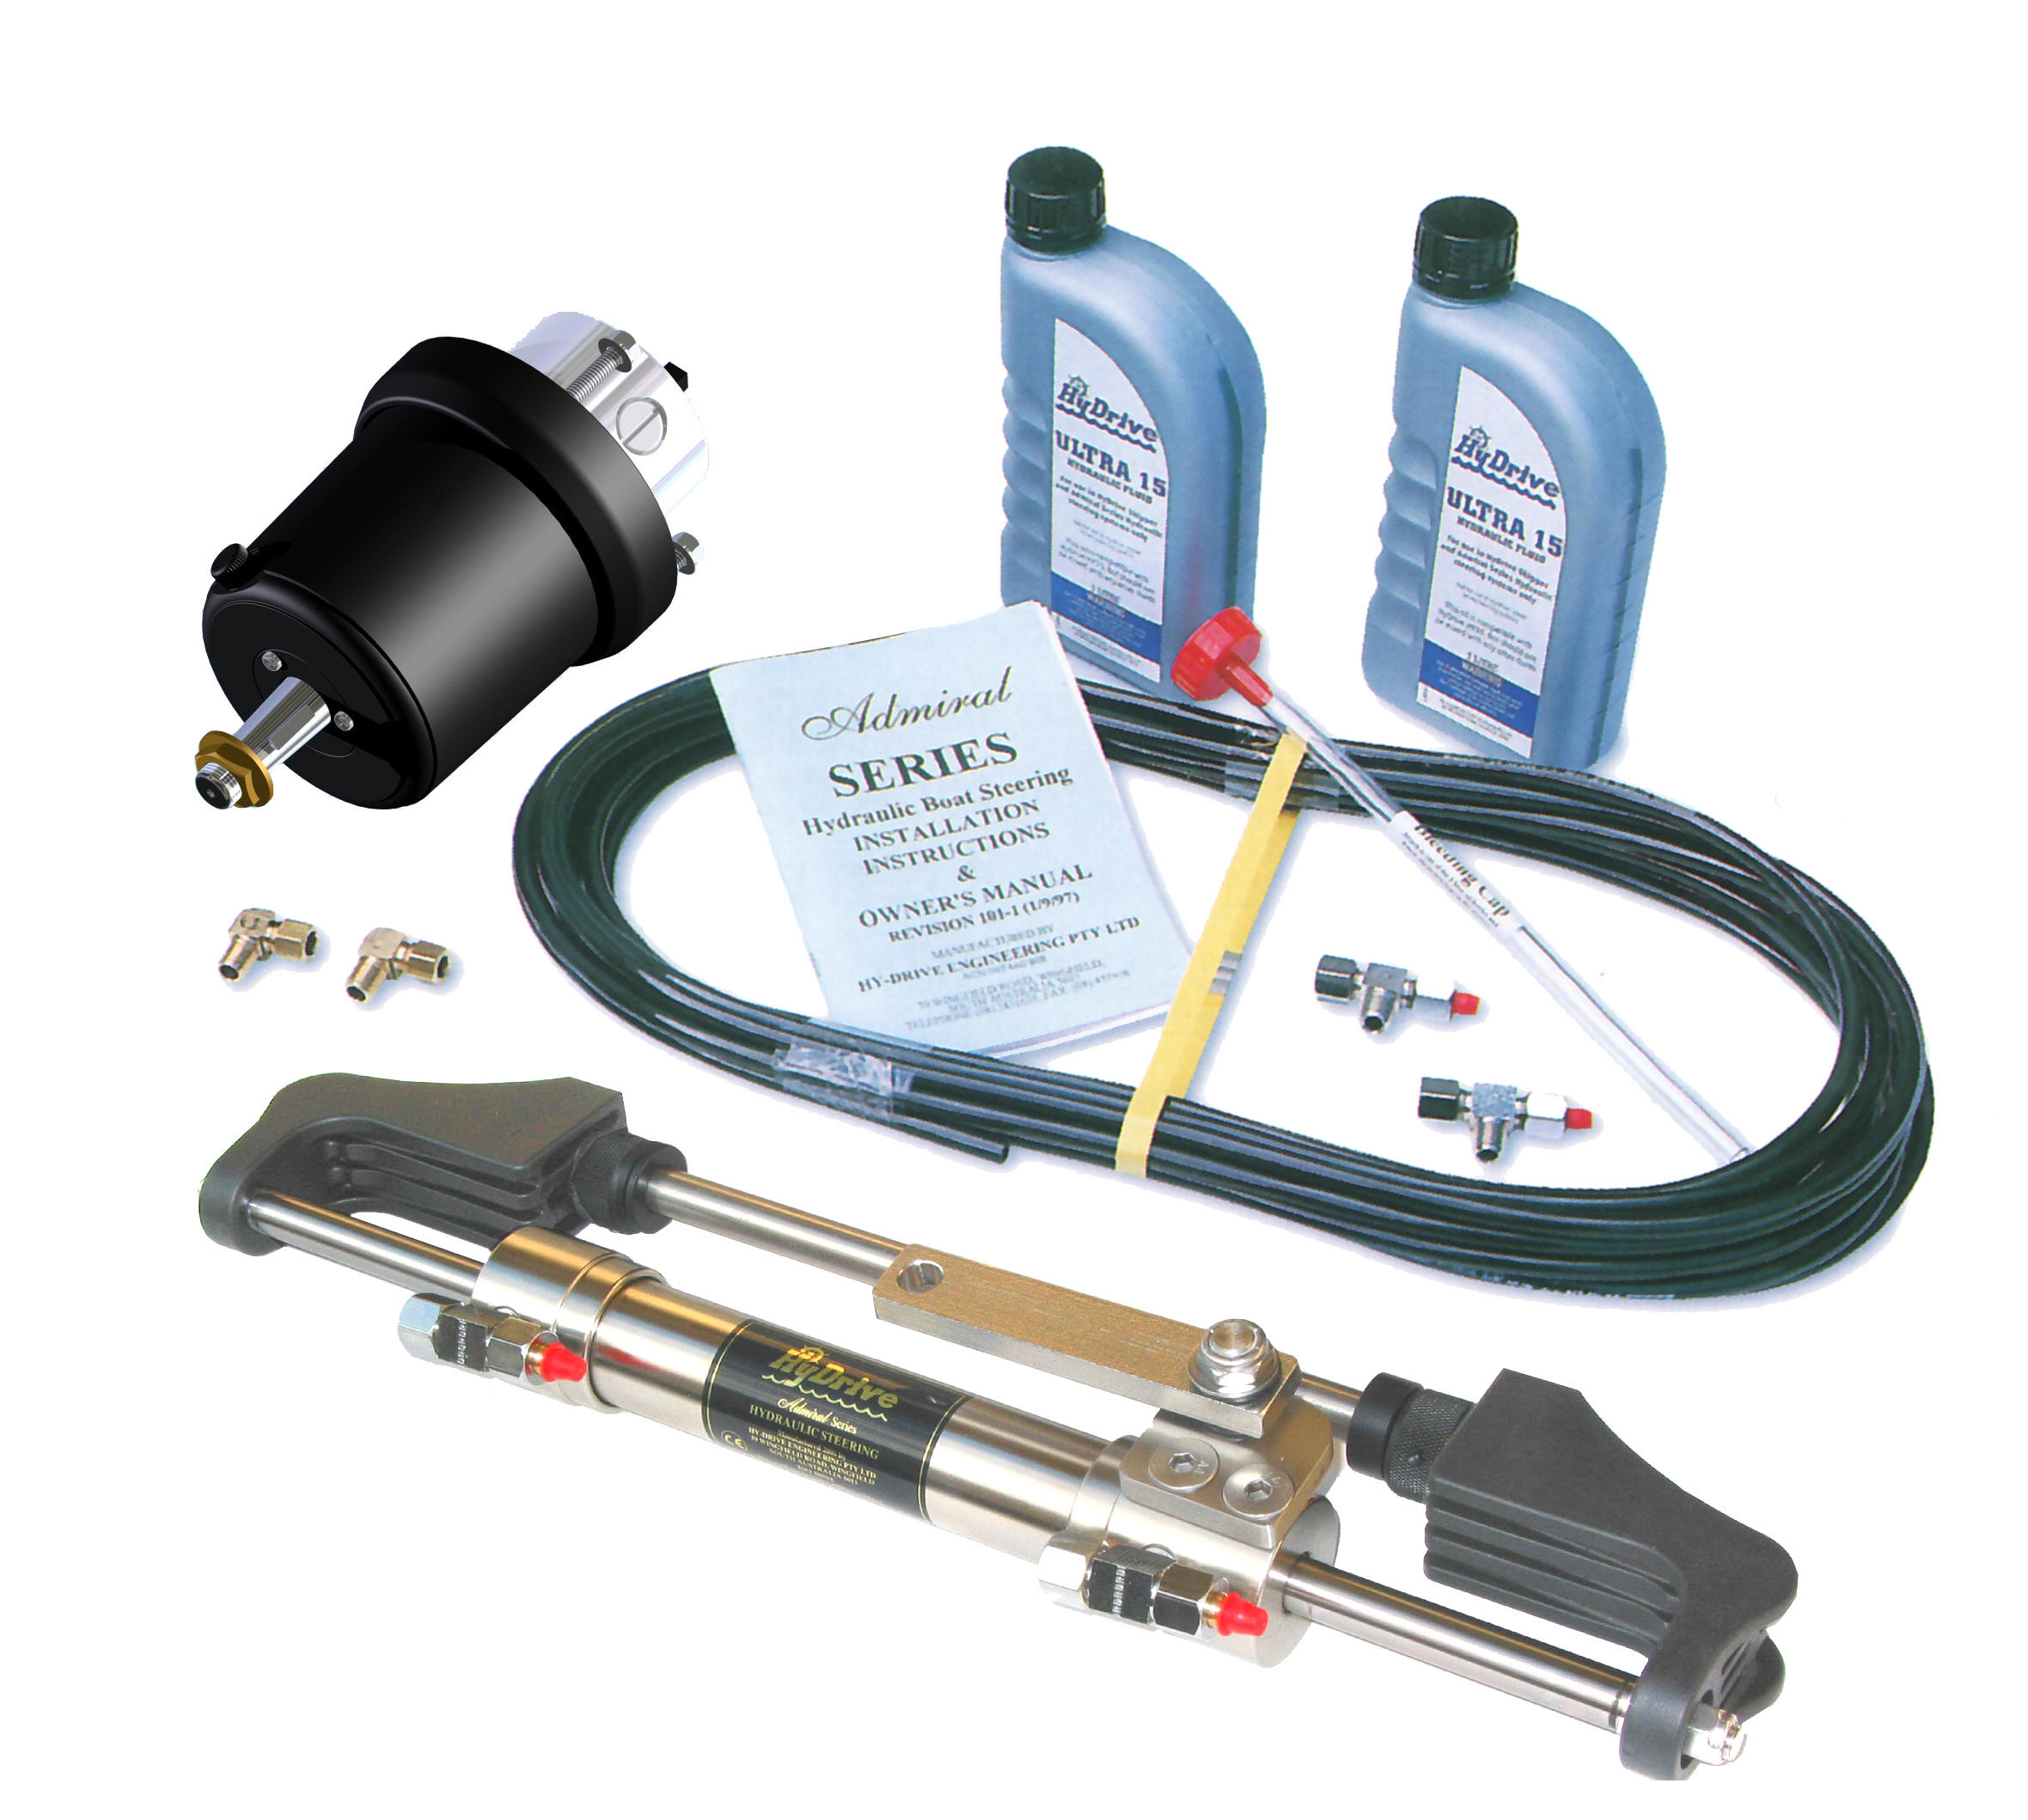 HyDrive Outboard Kits